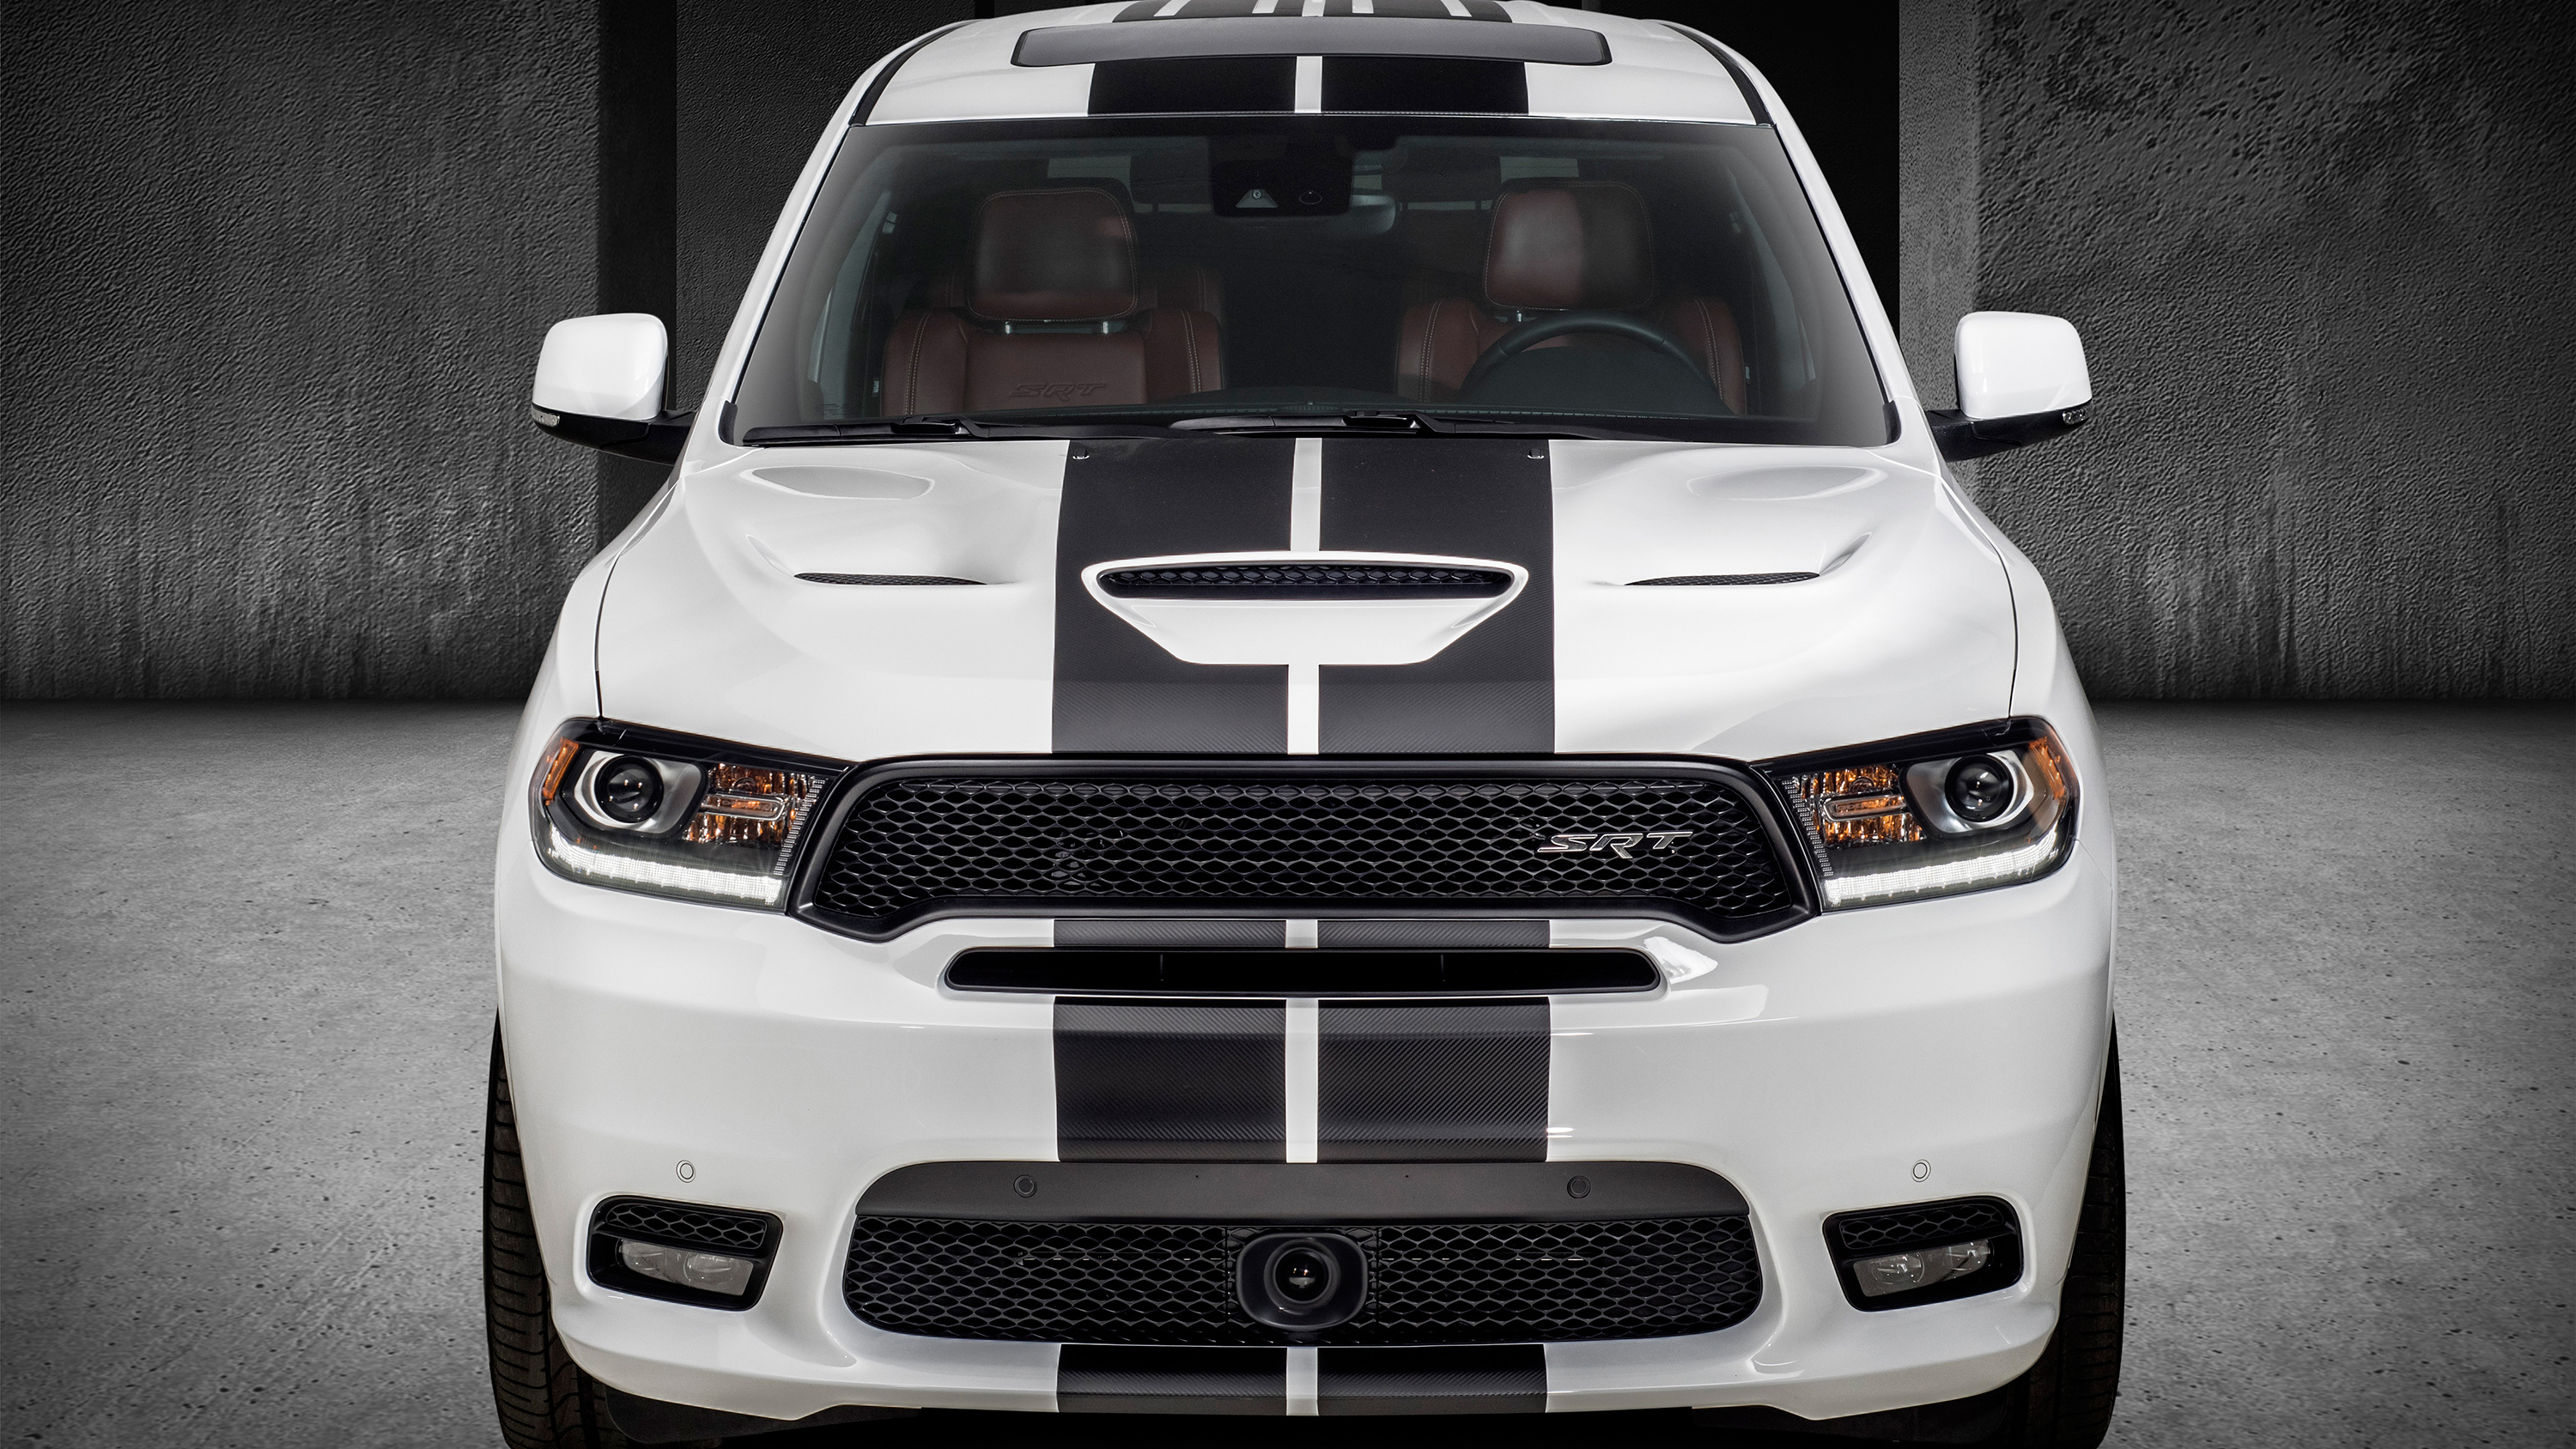 2018 mopar dodge durango srt wallpaper | hd car wallpapers | id #9566